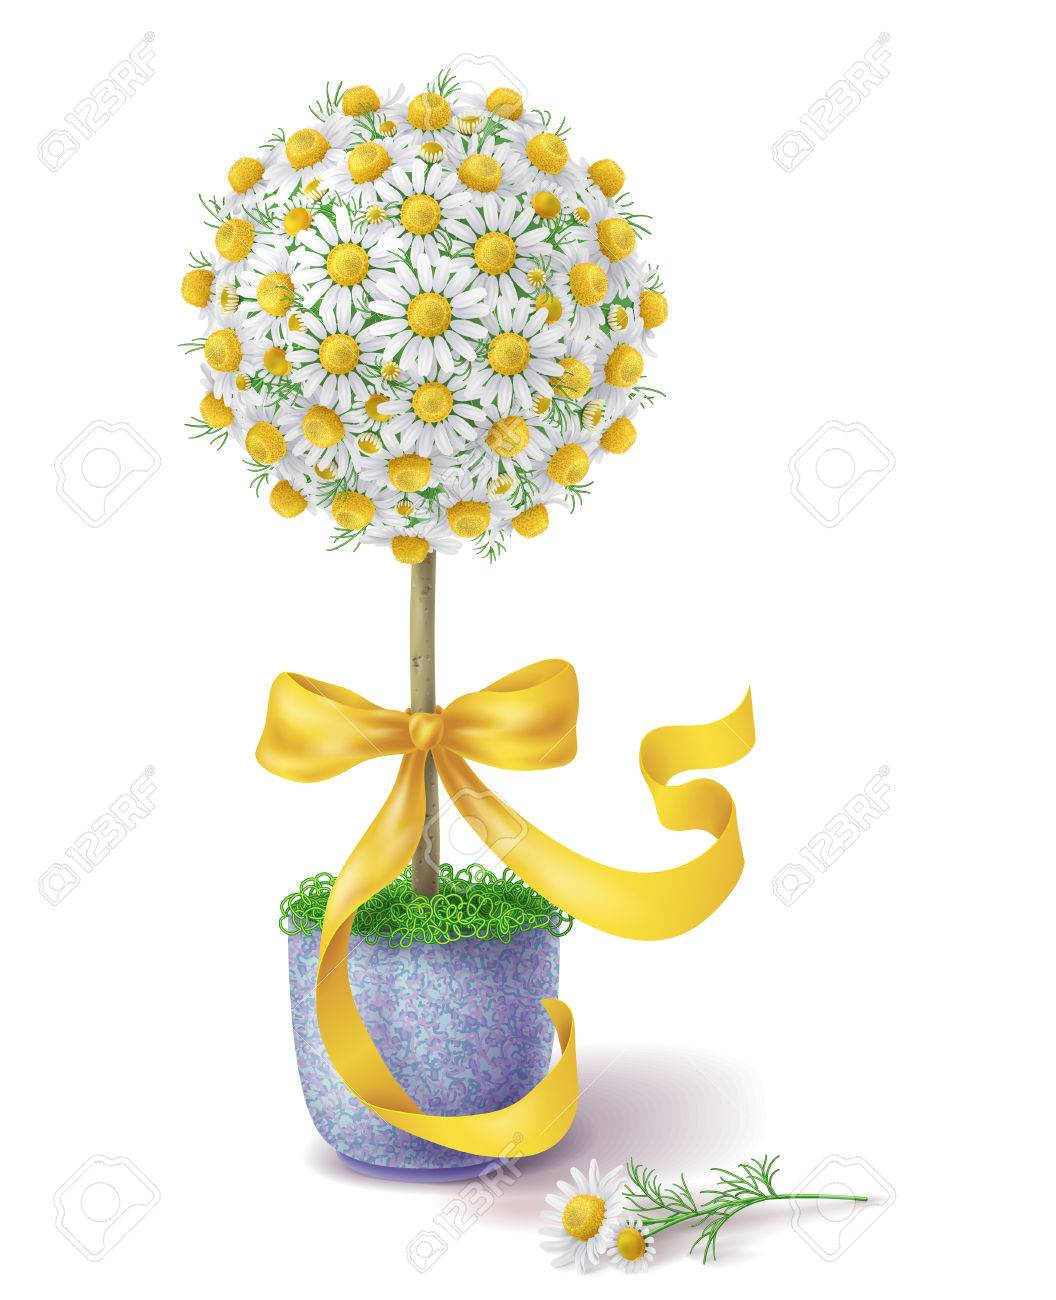 Small Handmade Floral Topiary Decorated With Chamomile Flowers Royalty Free Cliparts Vectors And Stock Illustration Image 43825853